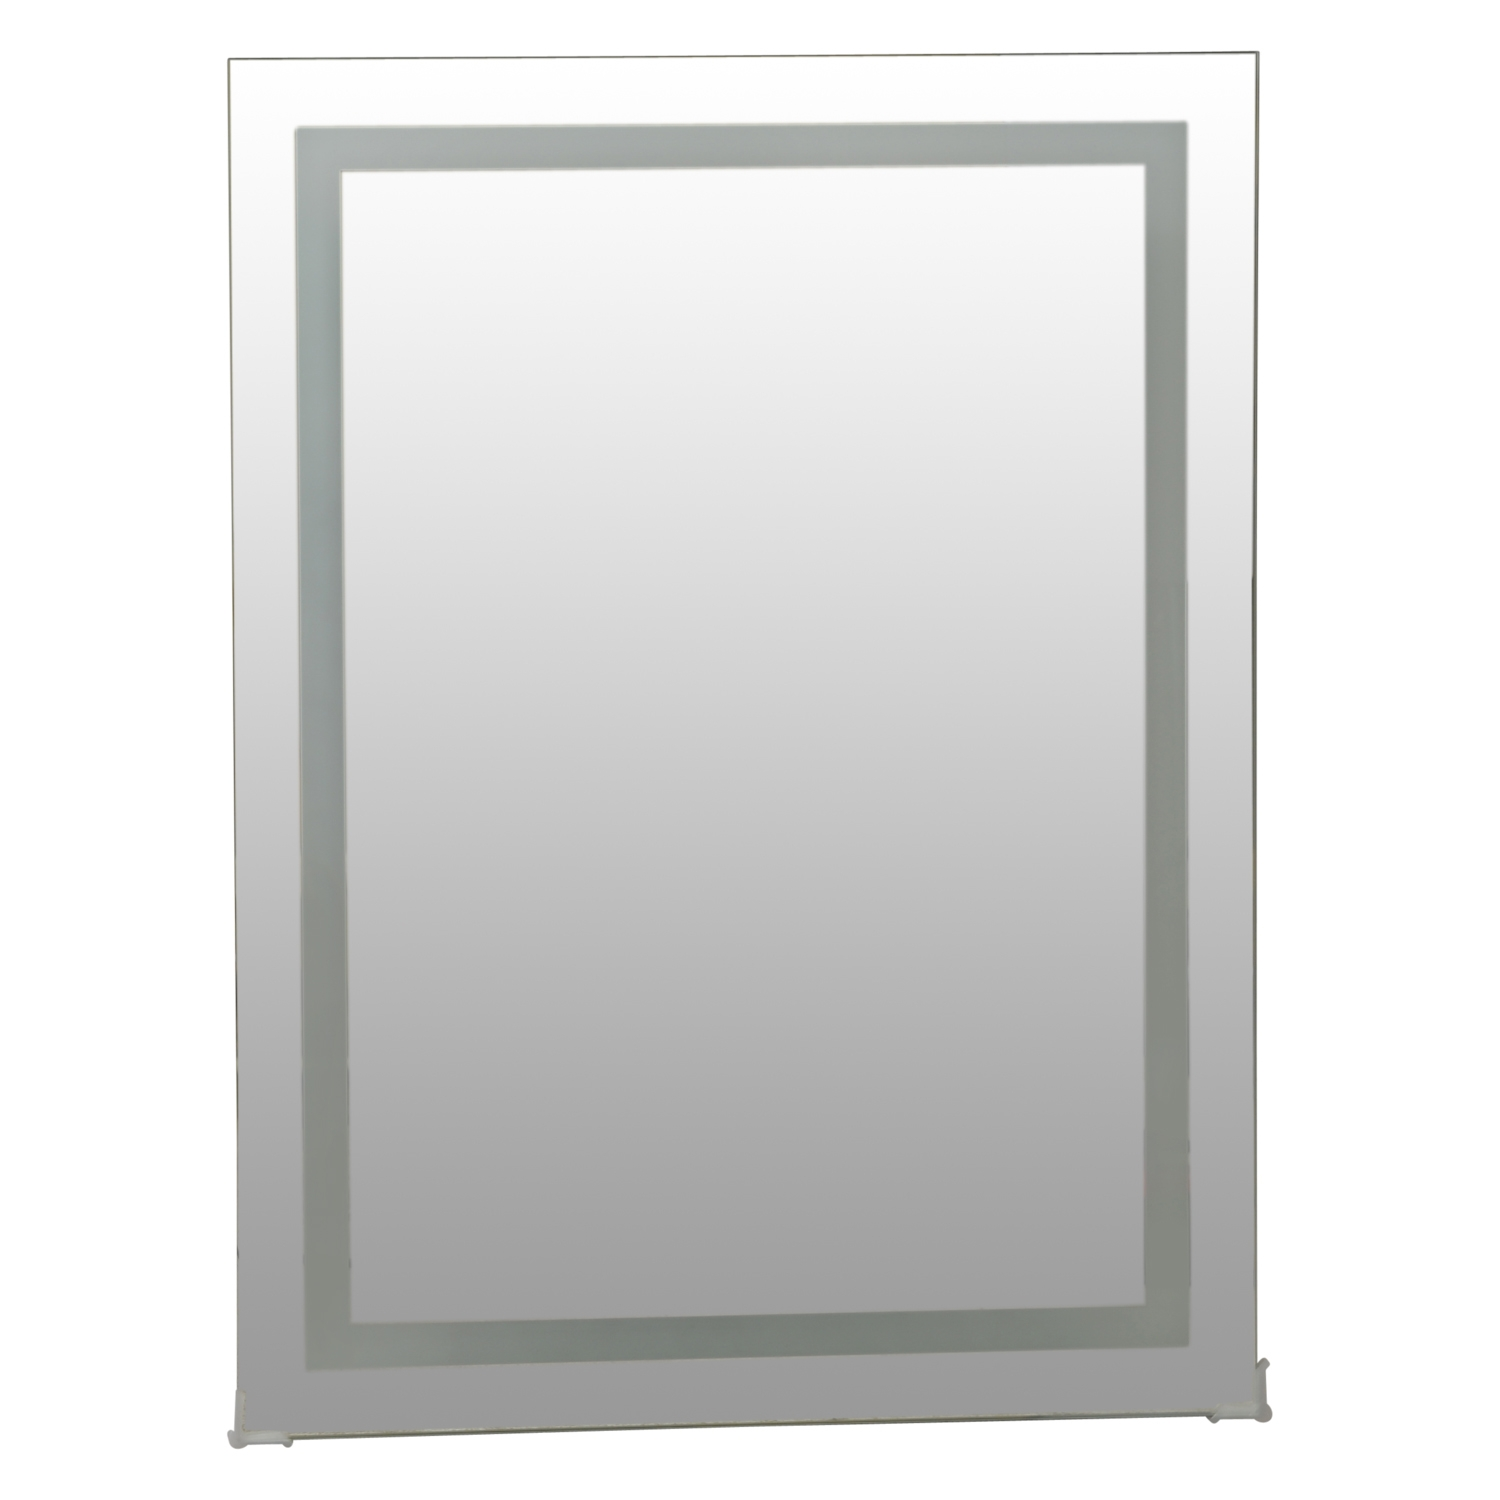 Image of Casa LED Mirror With Defogger, Silver